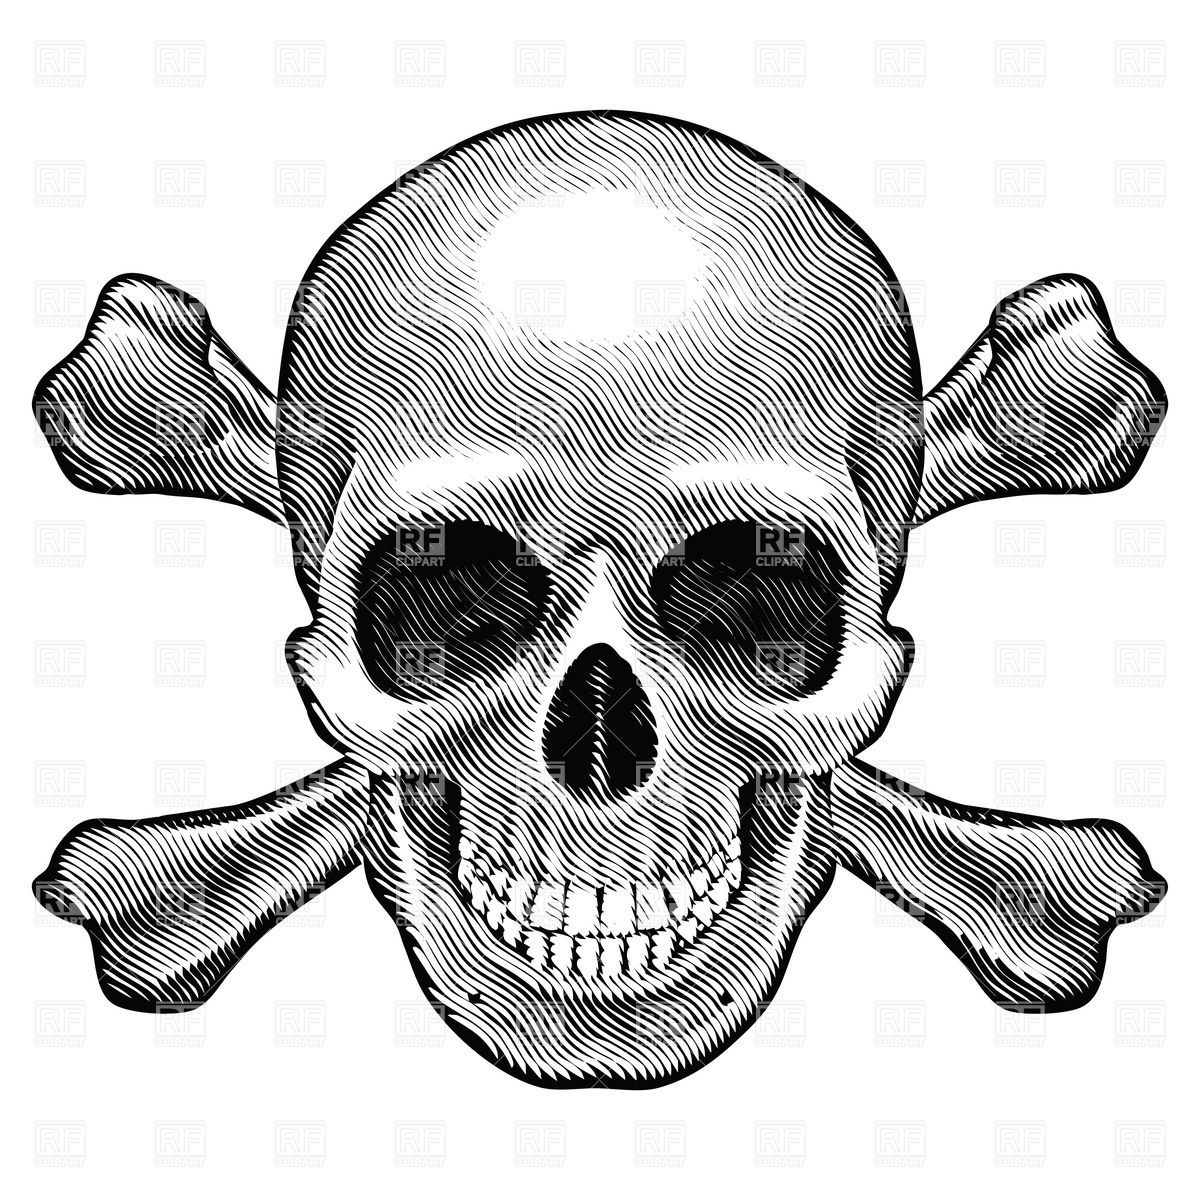 Crossbones and skull sketch style 7364 healthcare